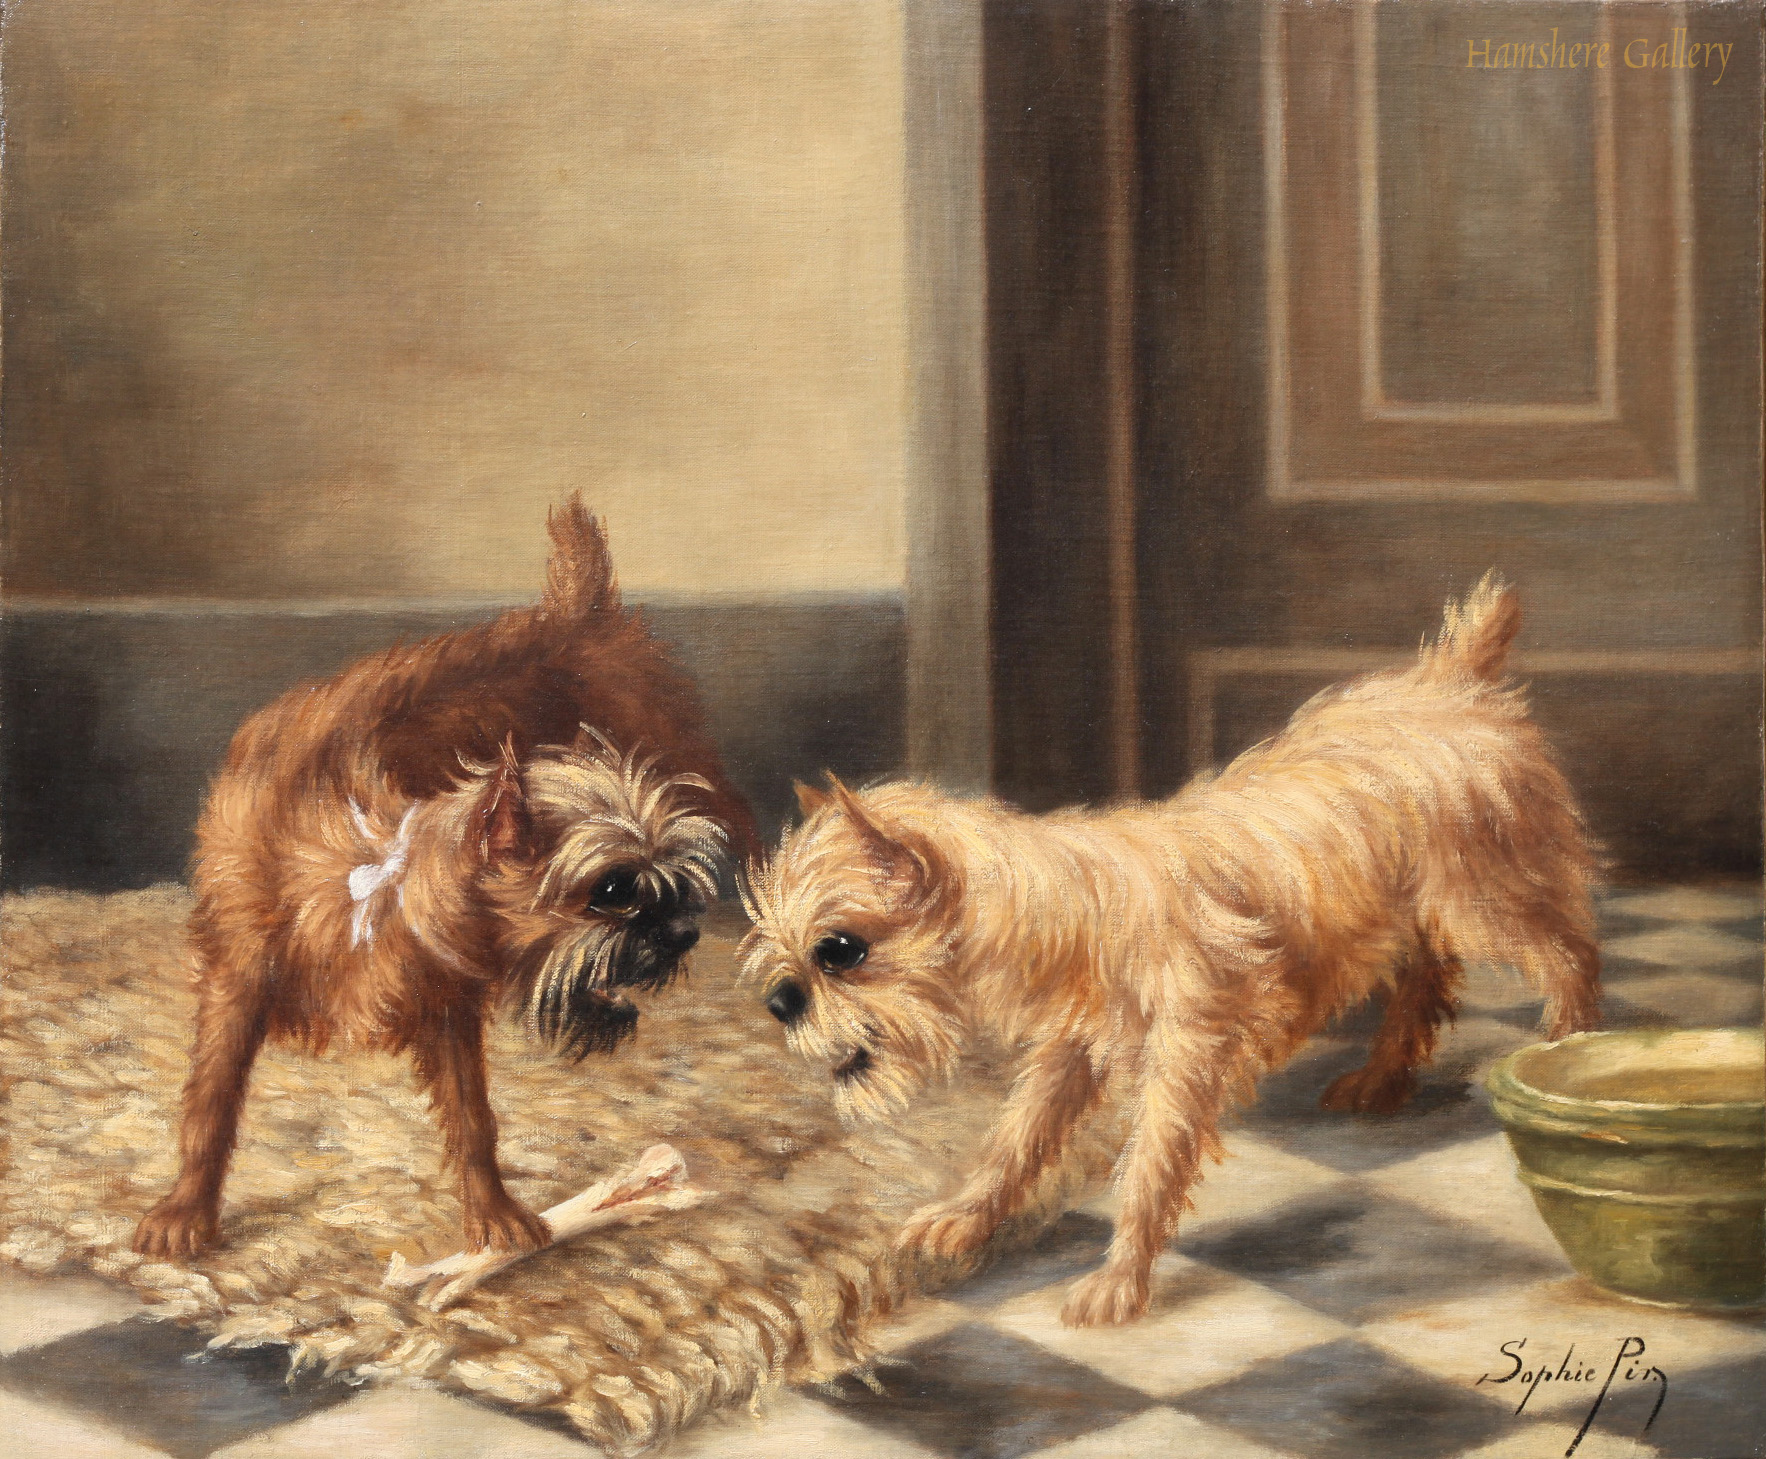 Click to see full size: Oil on canvas of a French Bulldog watching kittens play by Mme Sophie von Pir